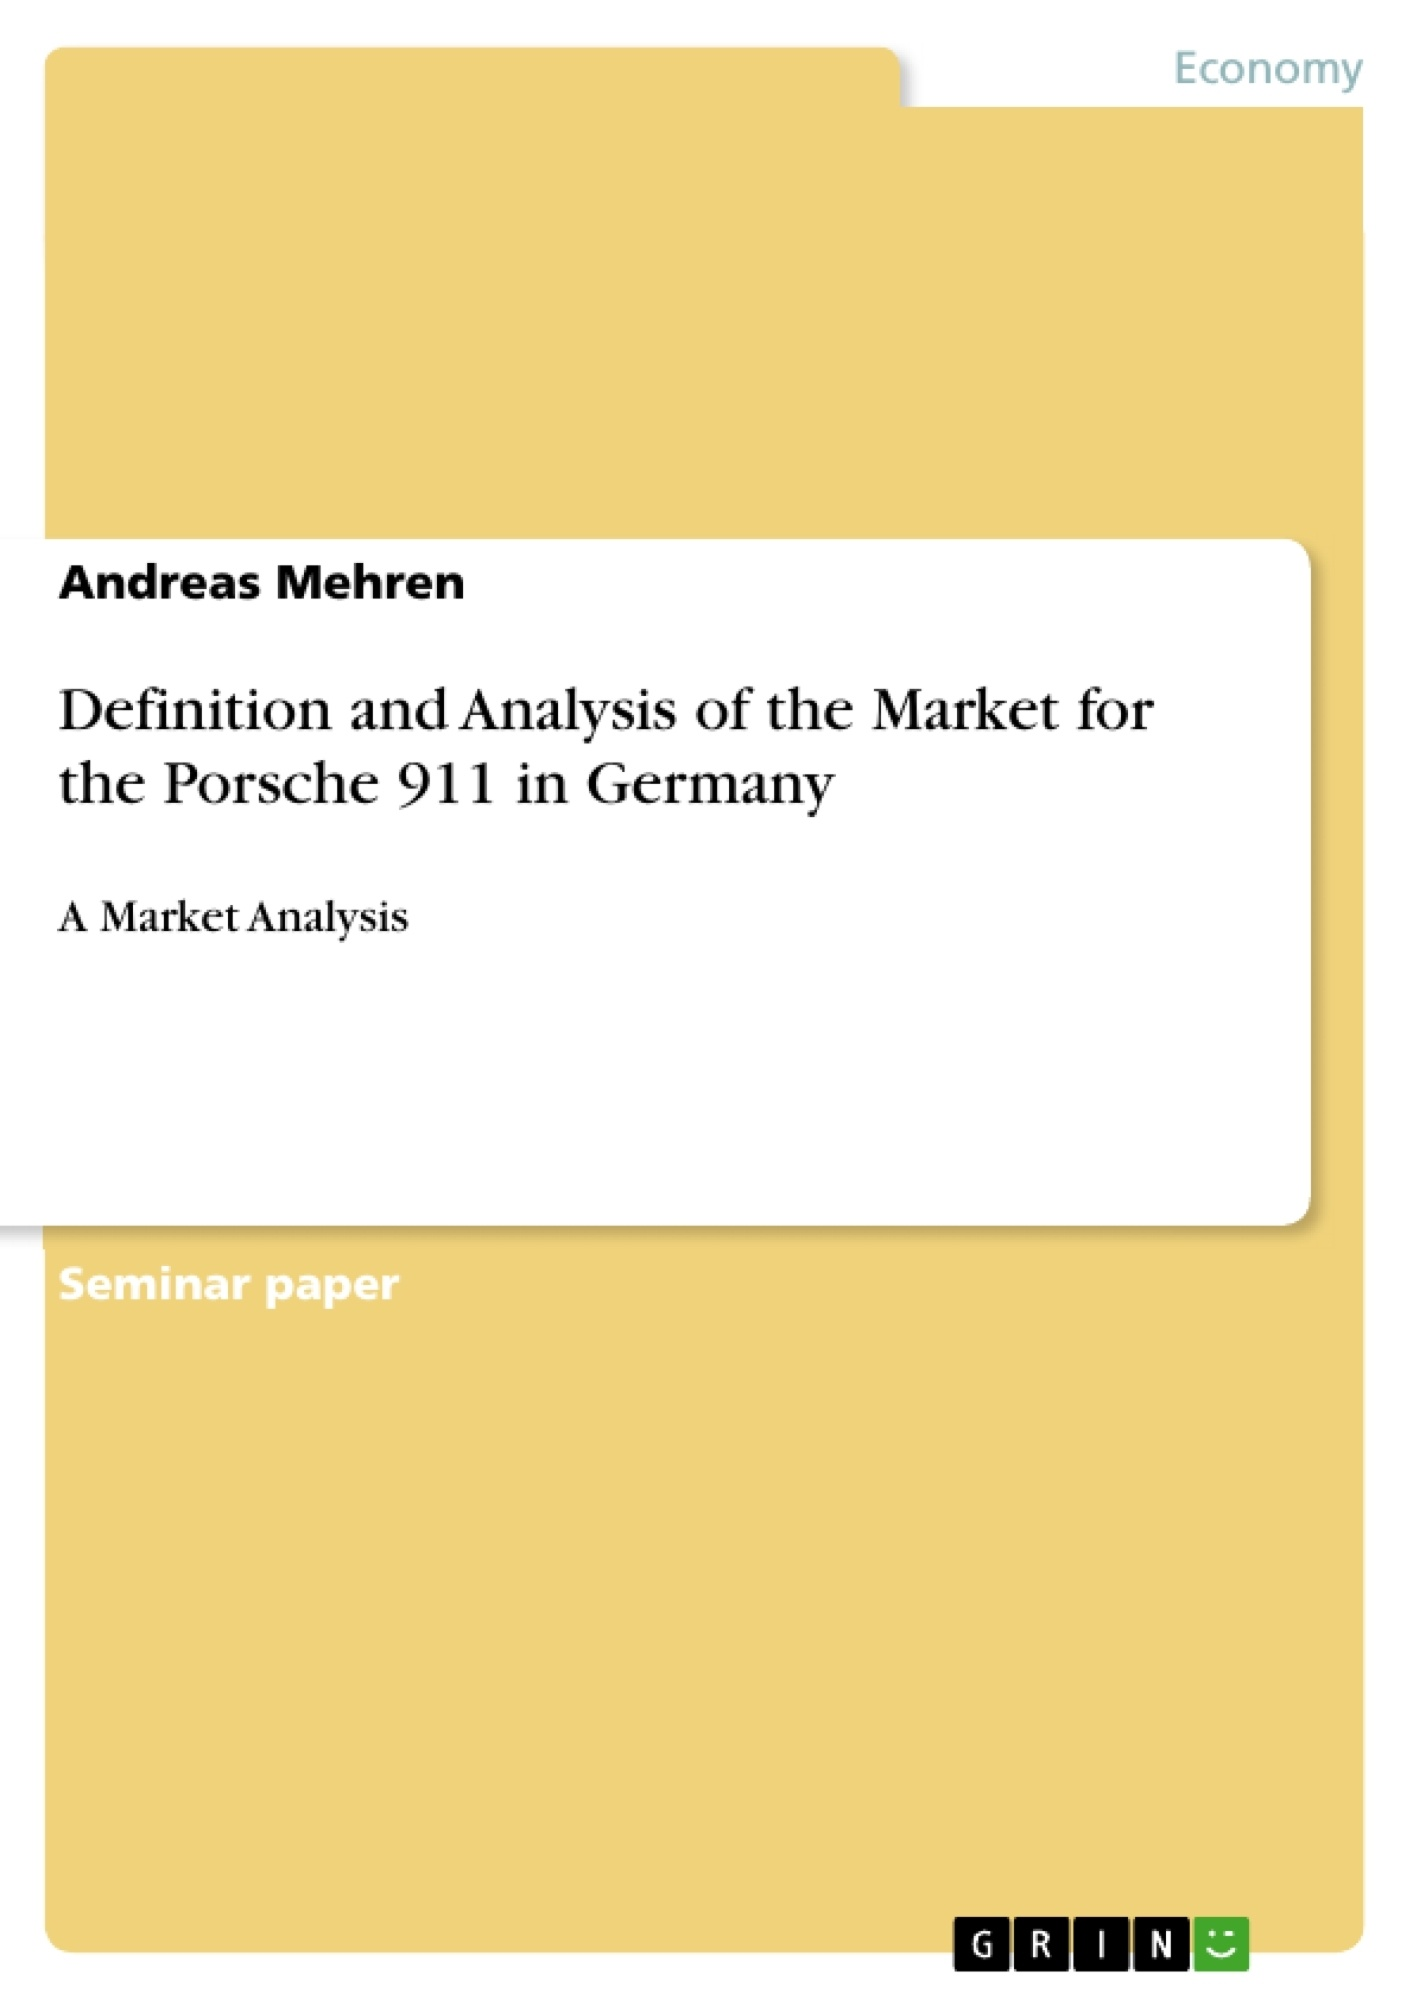 Title: Definition and Analysis of the Market for the Porsche 911 in Germany